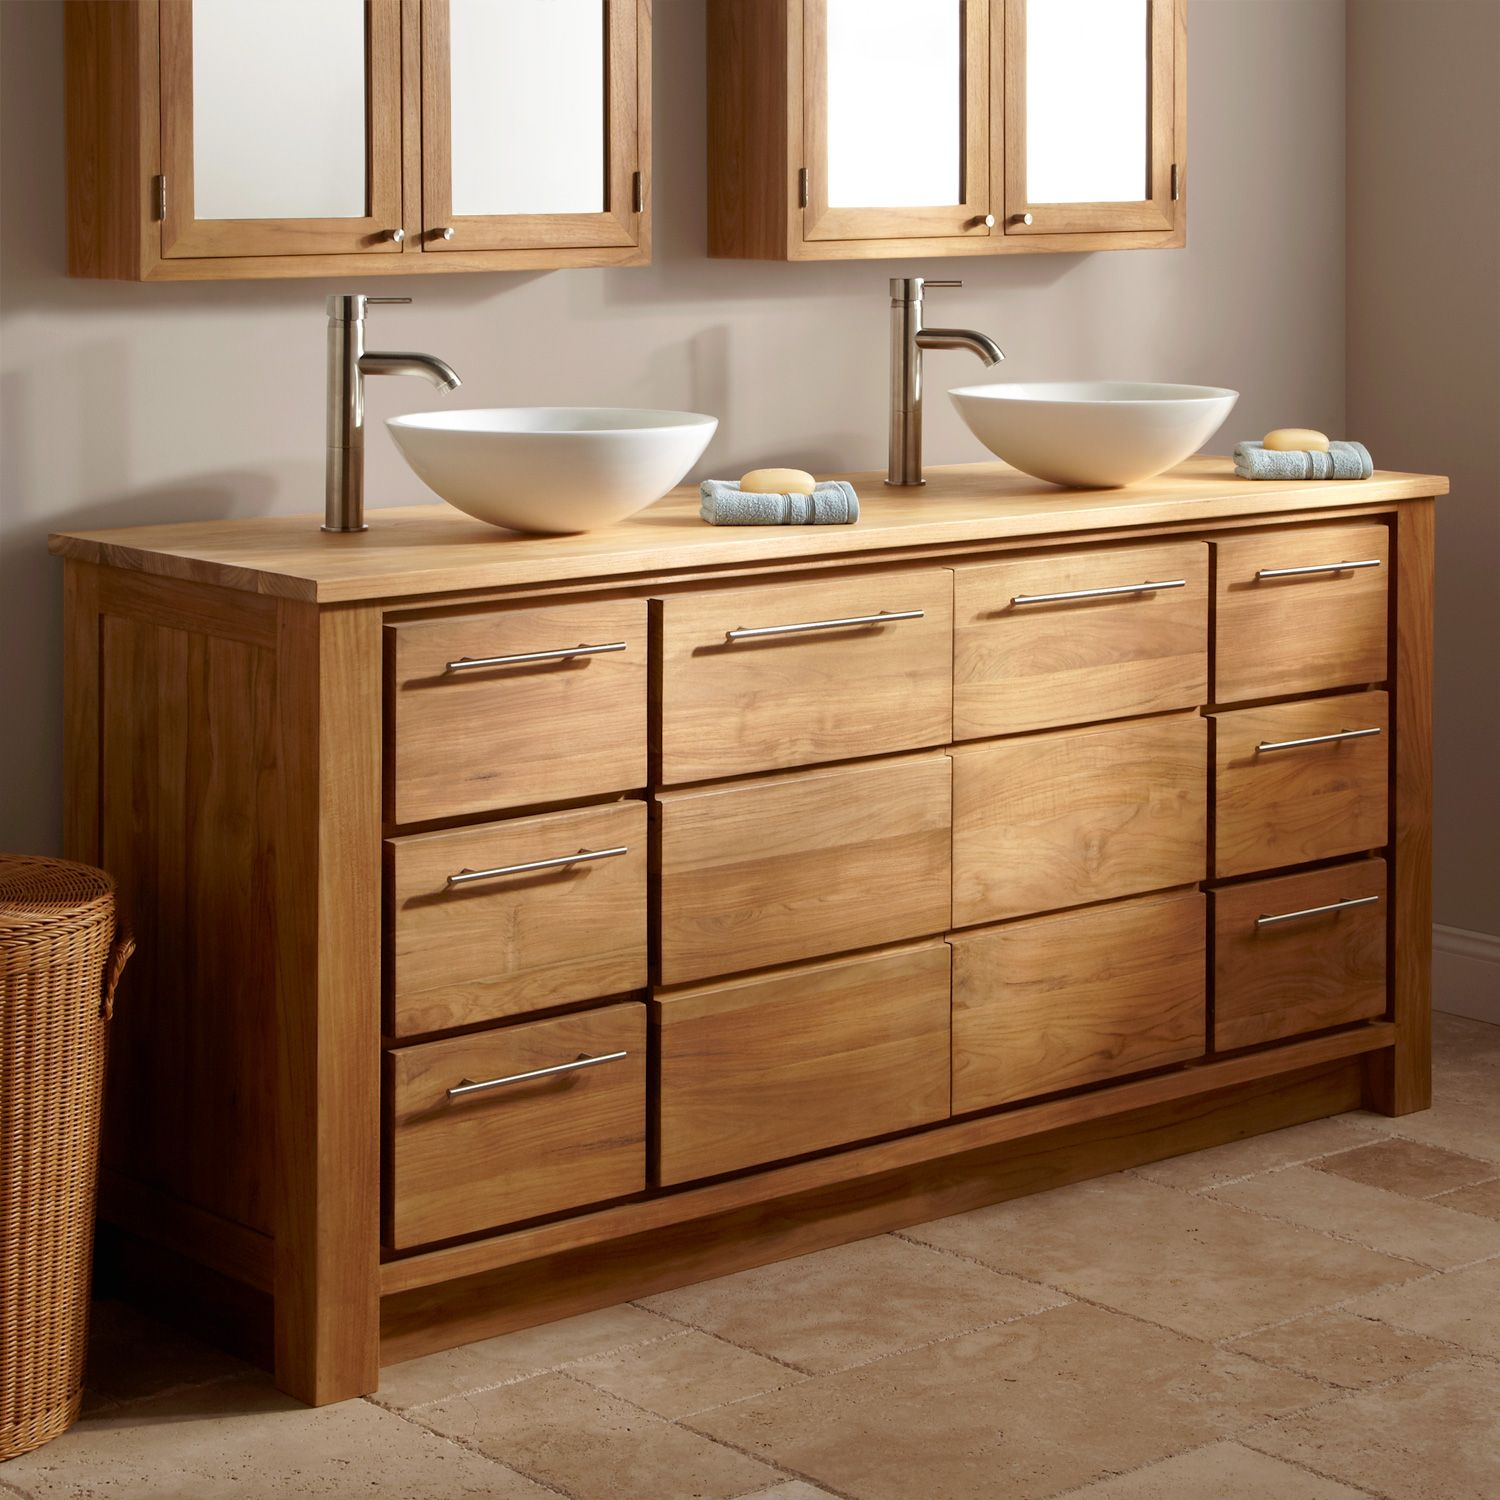 Asian Bathroom Vanity Cabinets 72 Venica Teak Double Vanity Cabinet With Teak Top For Vessel